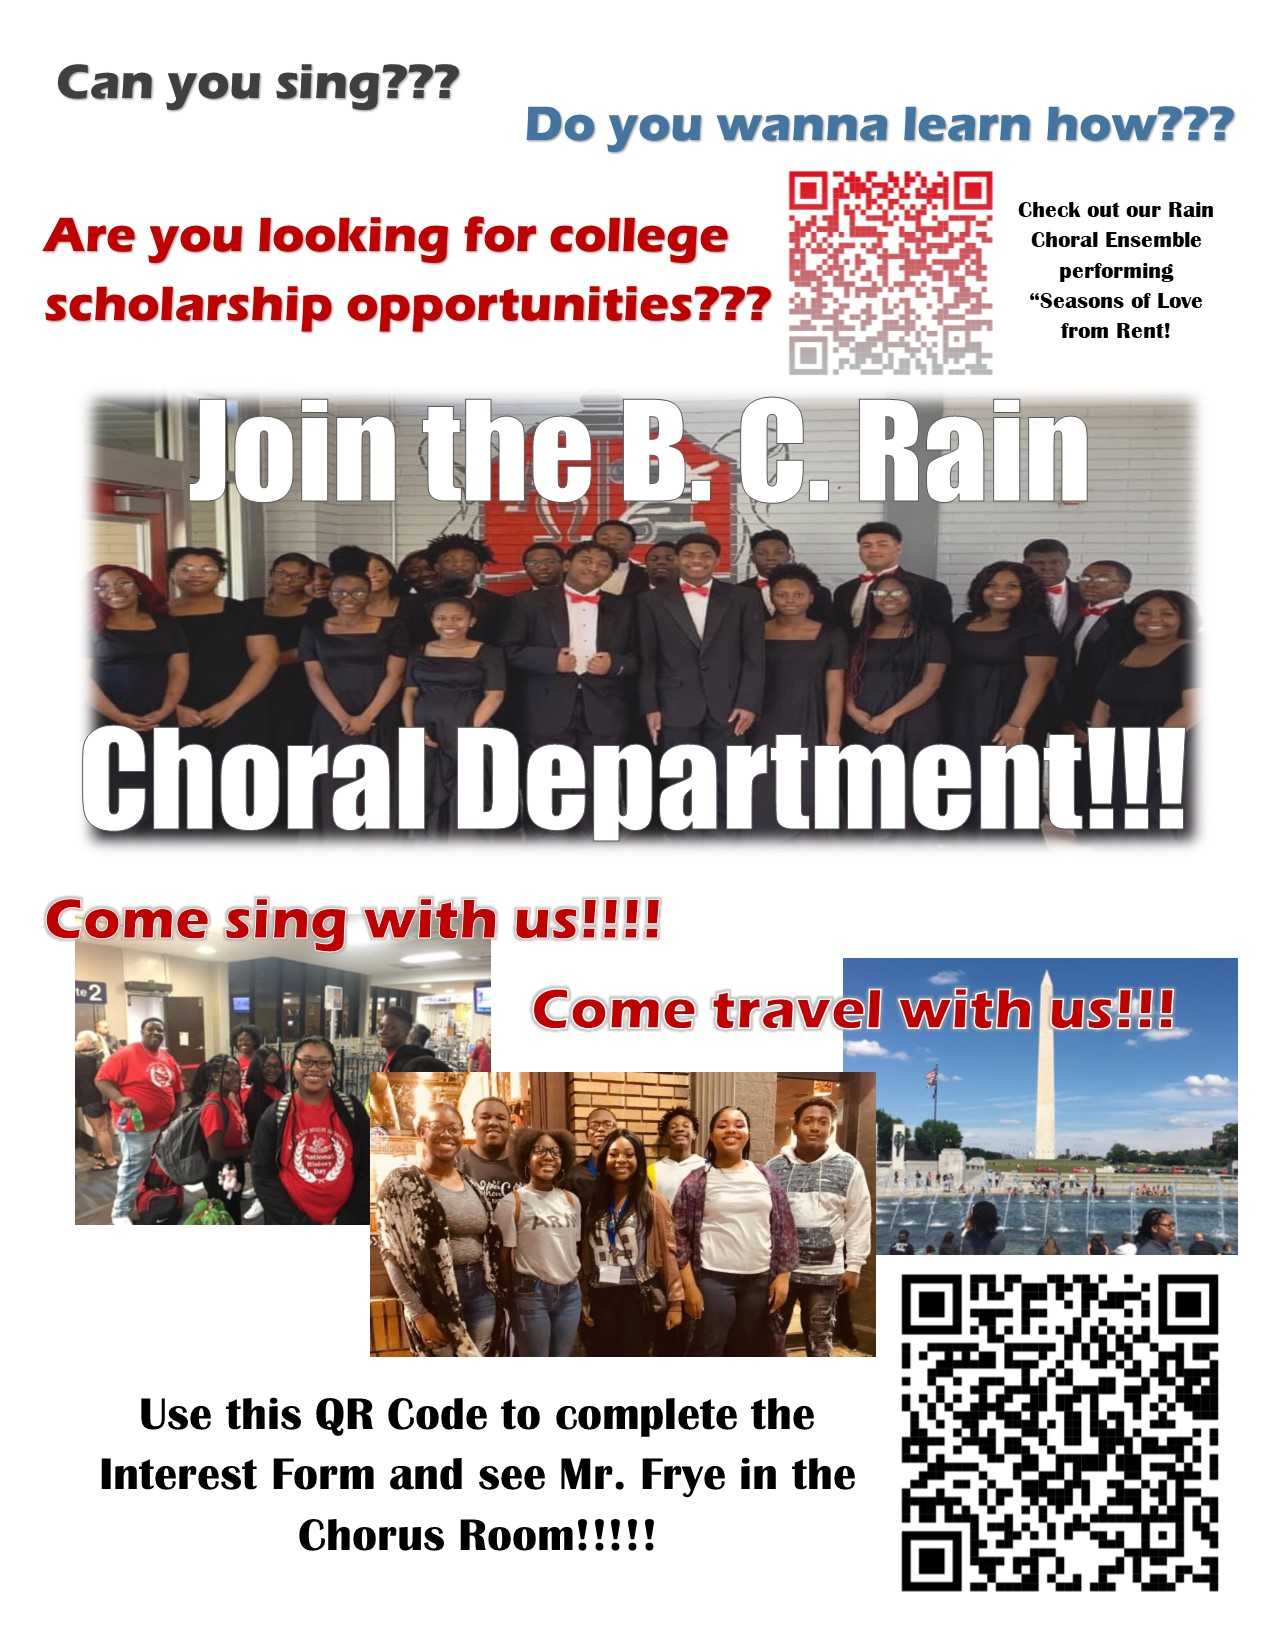 choral department